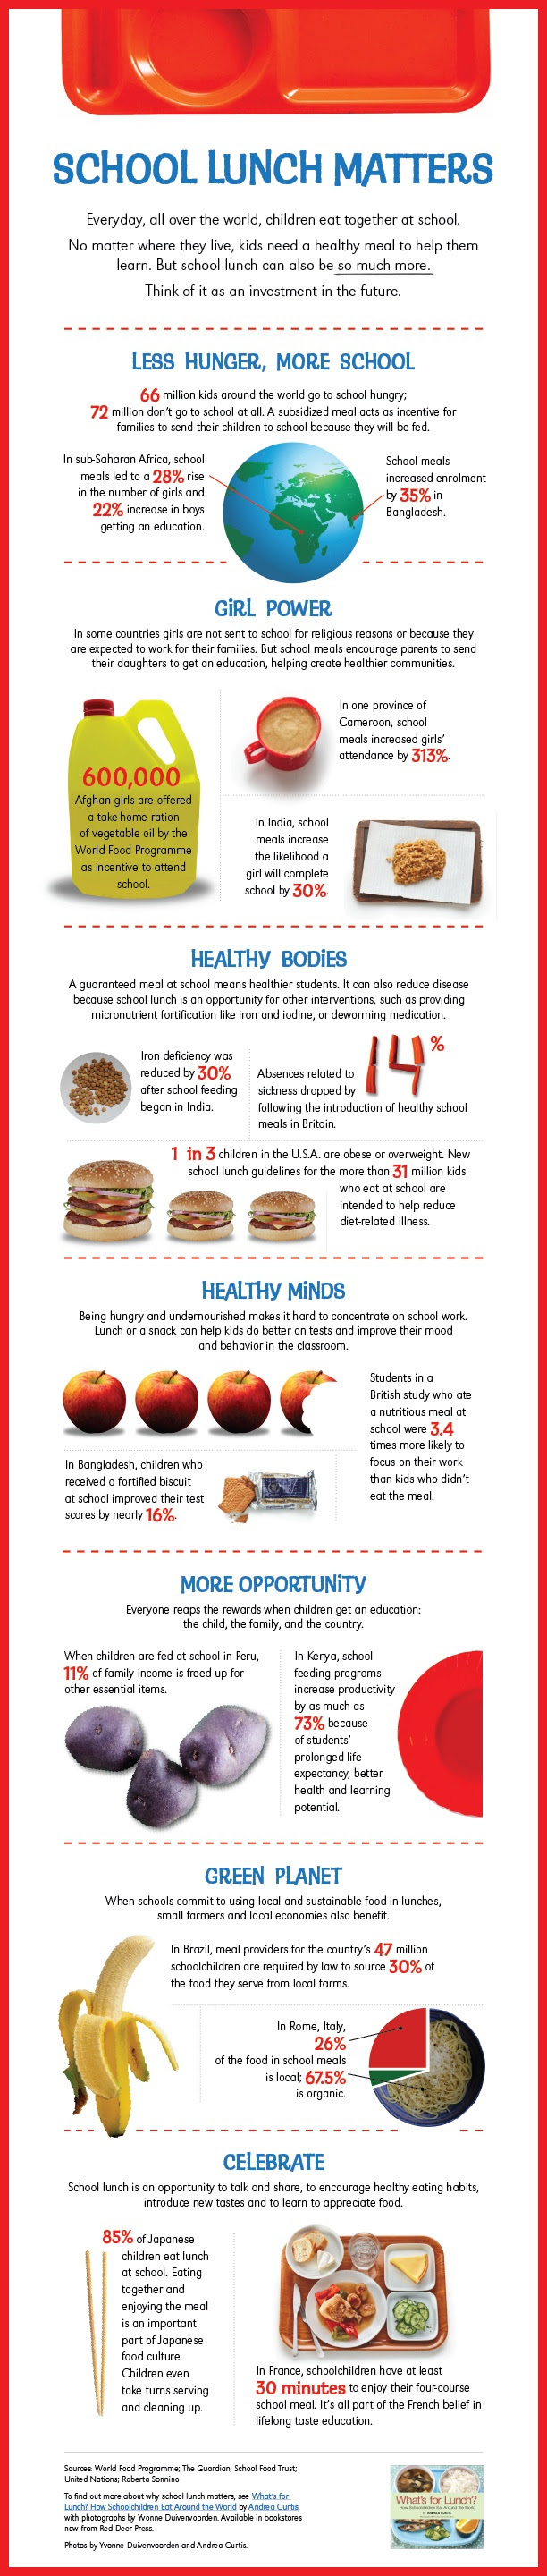 School Lunch Matters Infographic